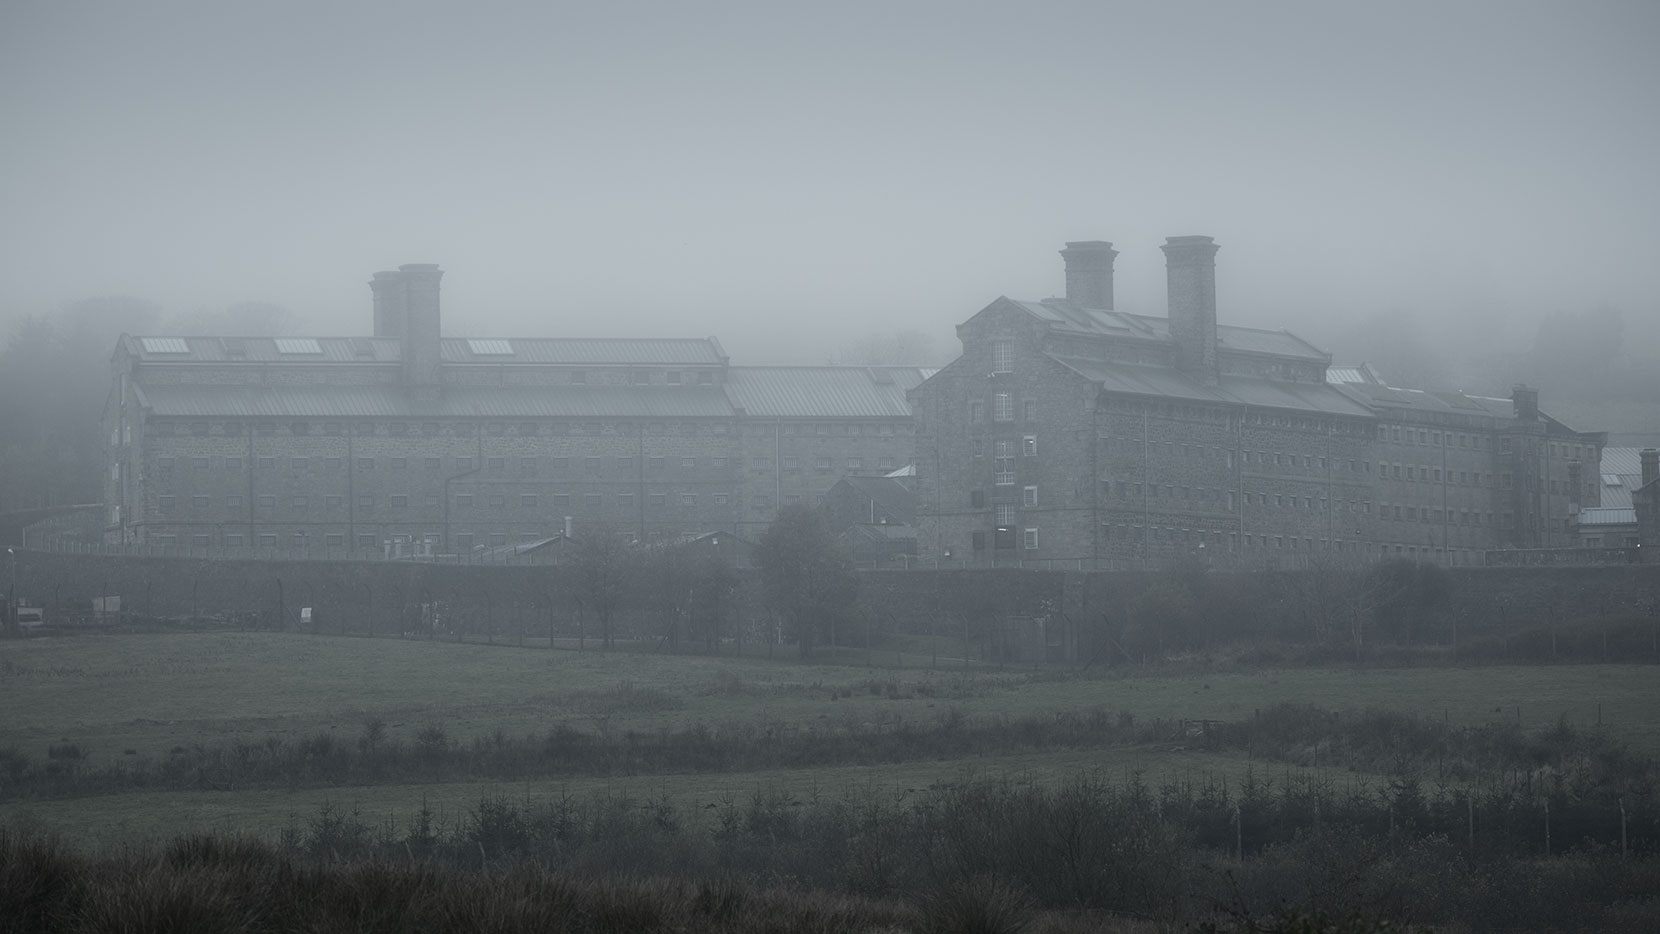 Norman Stanley Fletcher - you are hereby sentenced to five years... industrial and menacing, Dartmoor Prison is fearful place in the fog.